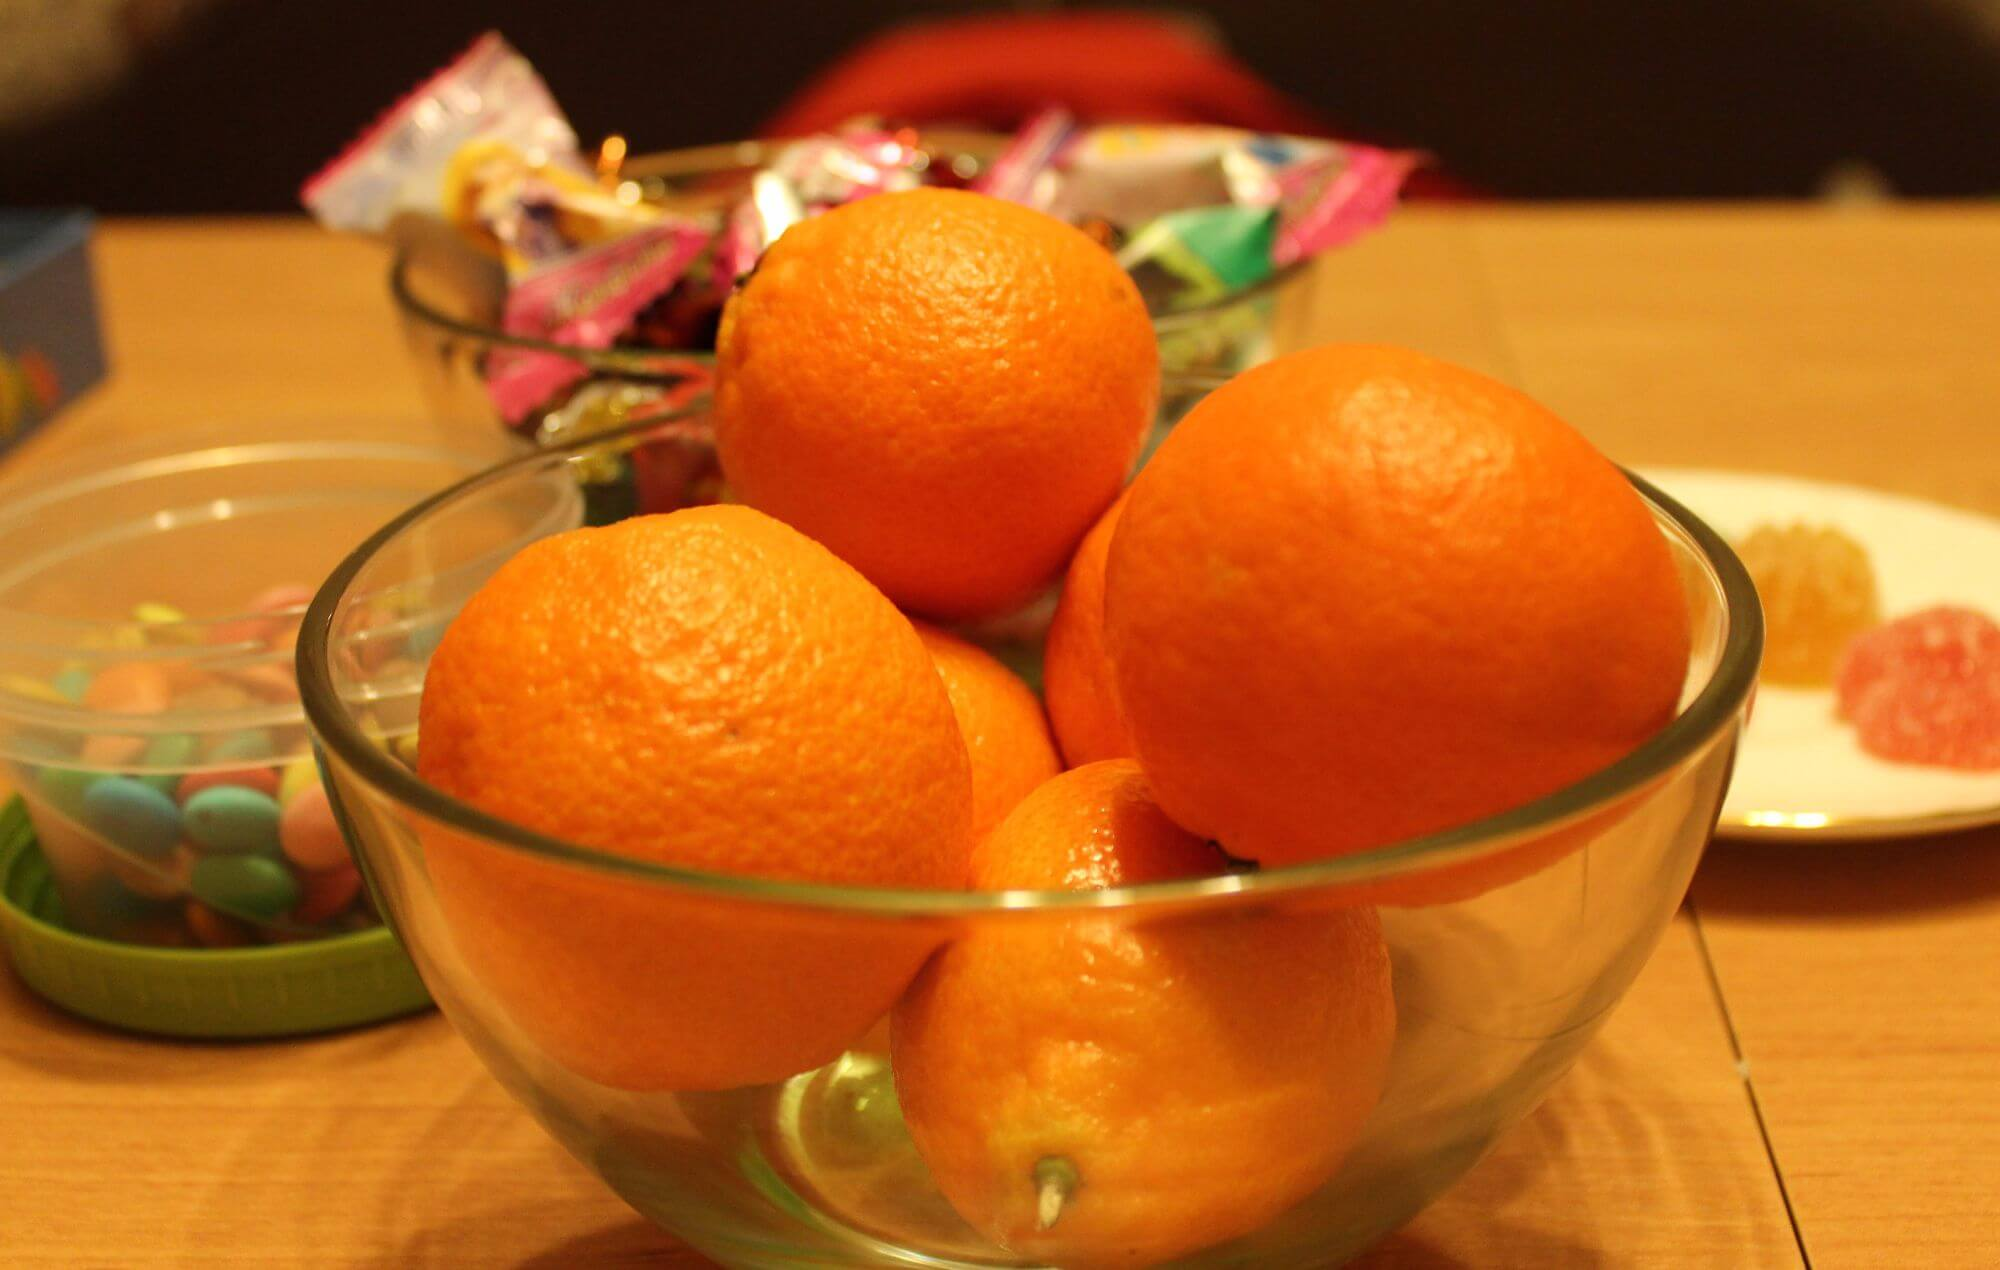 How to wash tangerine